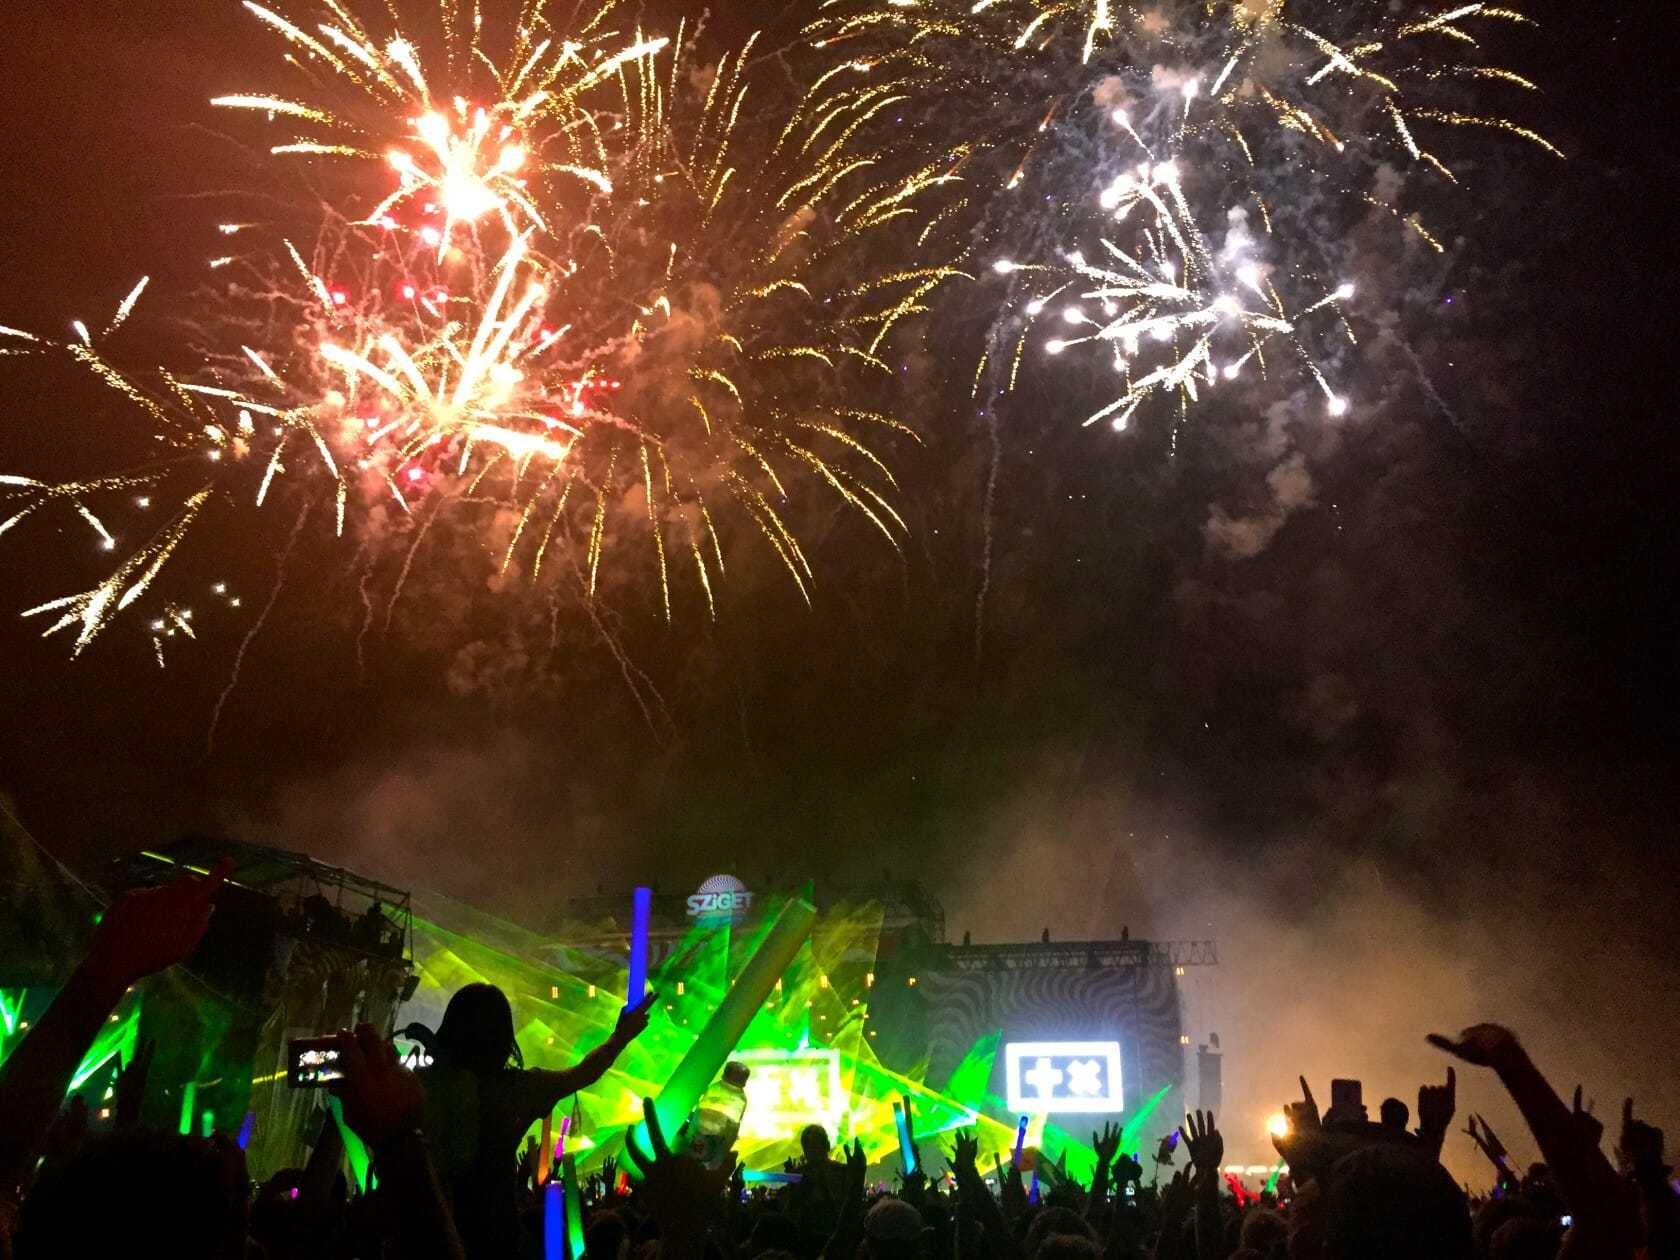 sziget review + festival guide for sziget festival in budapest august main stage sziget guide